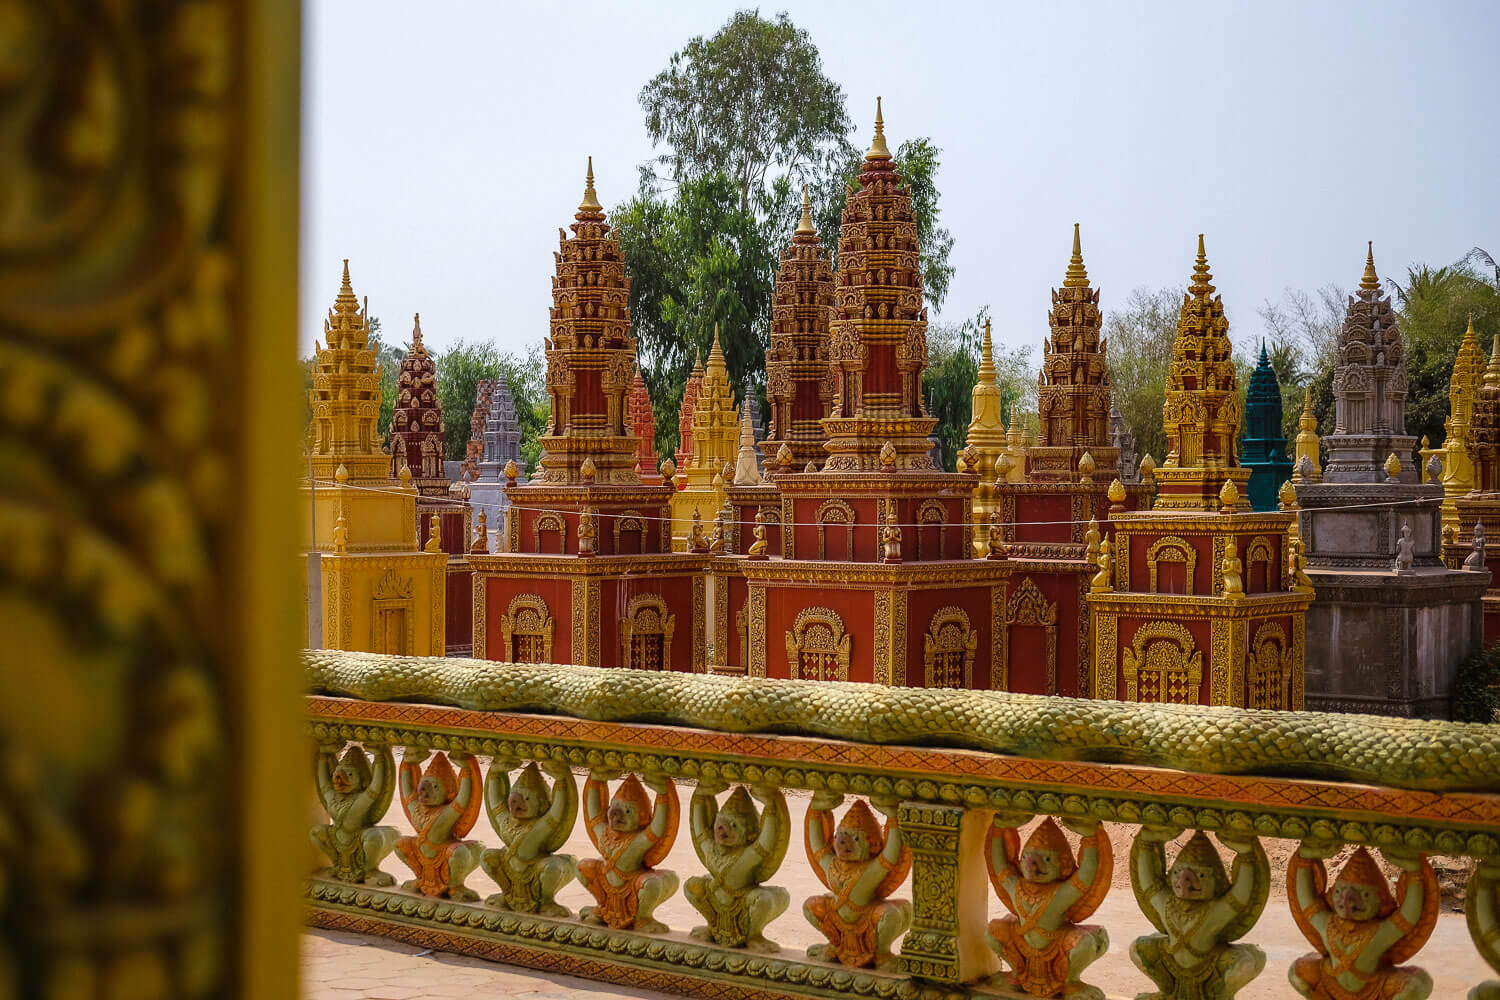 Colourful stupas where people's remains are buried